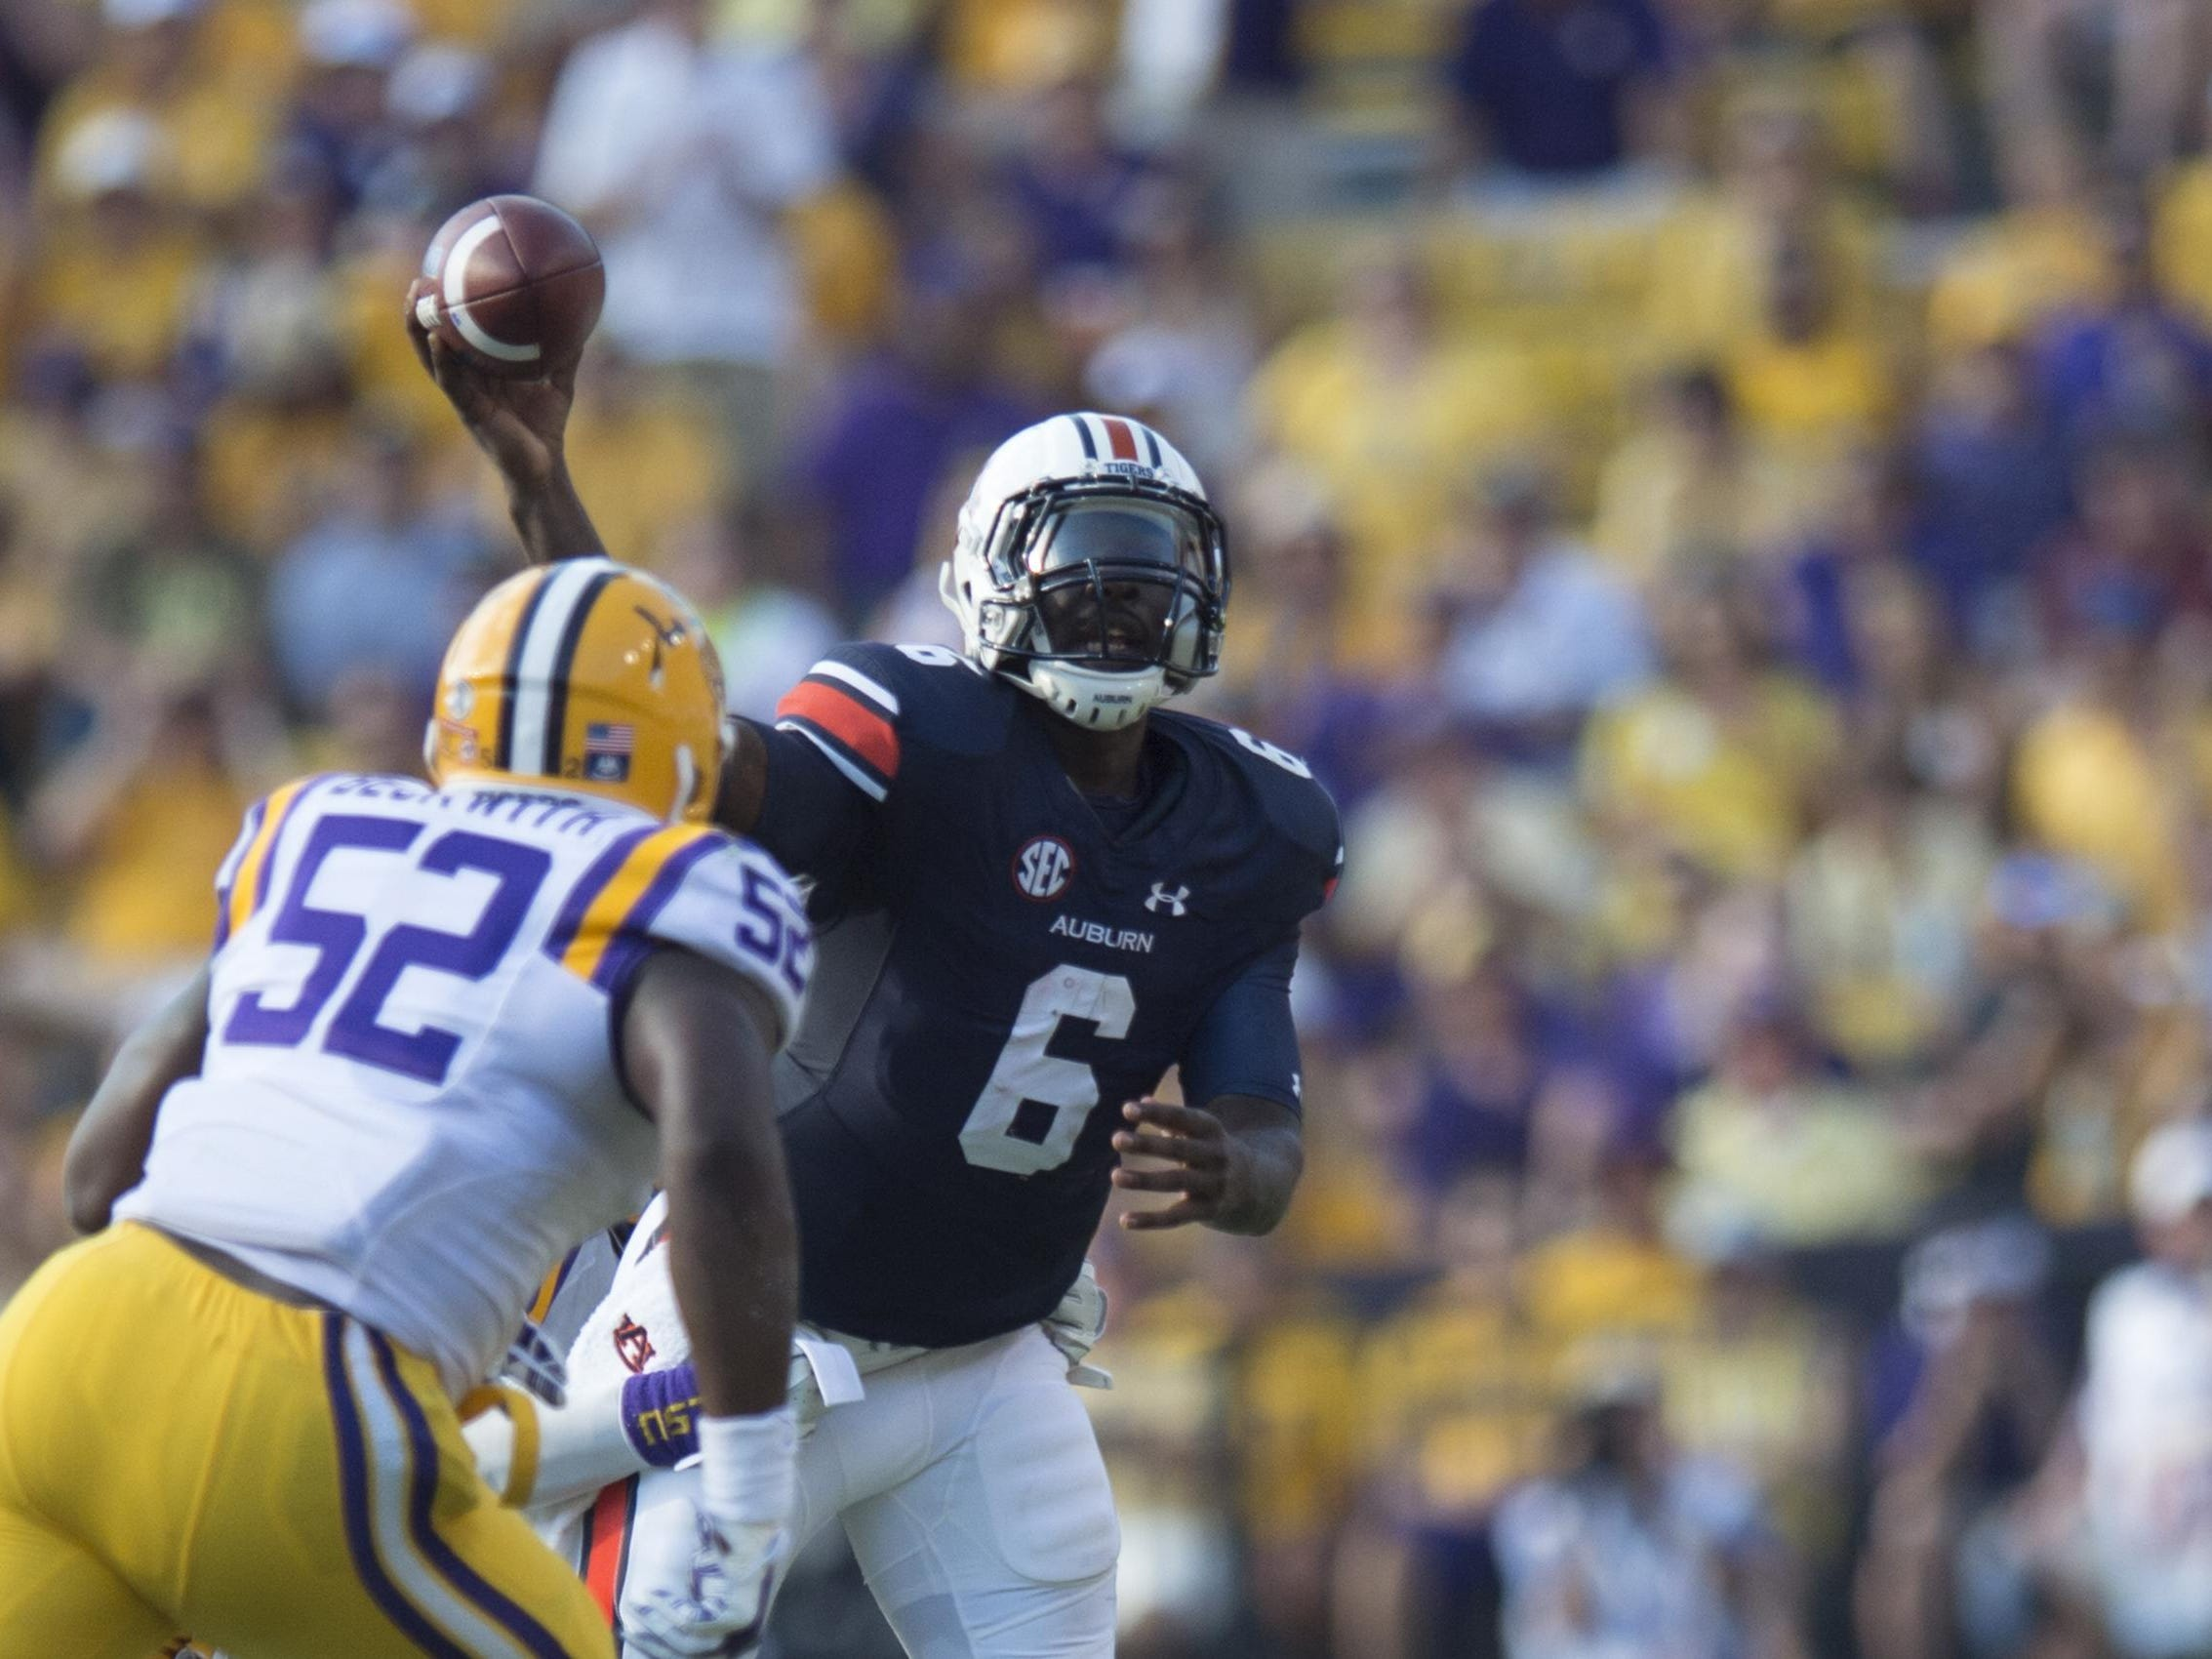 Auburn Tigers quarterback Jeremy Johnson (6) throws a pass as Louisiana State linebacker Kendell Beckwith rushes him during the NCAA football game between LSU Tigers and Auburn on Saturday, Sept. 19, 2015, at Tiger Stadium in Baton Rouge, La. LSU Tigers defeated Auburn Tigers 45-21. Albert Cesare / Advertiser